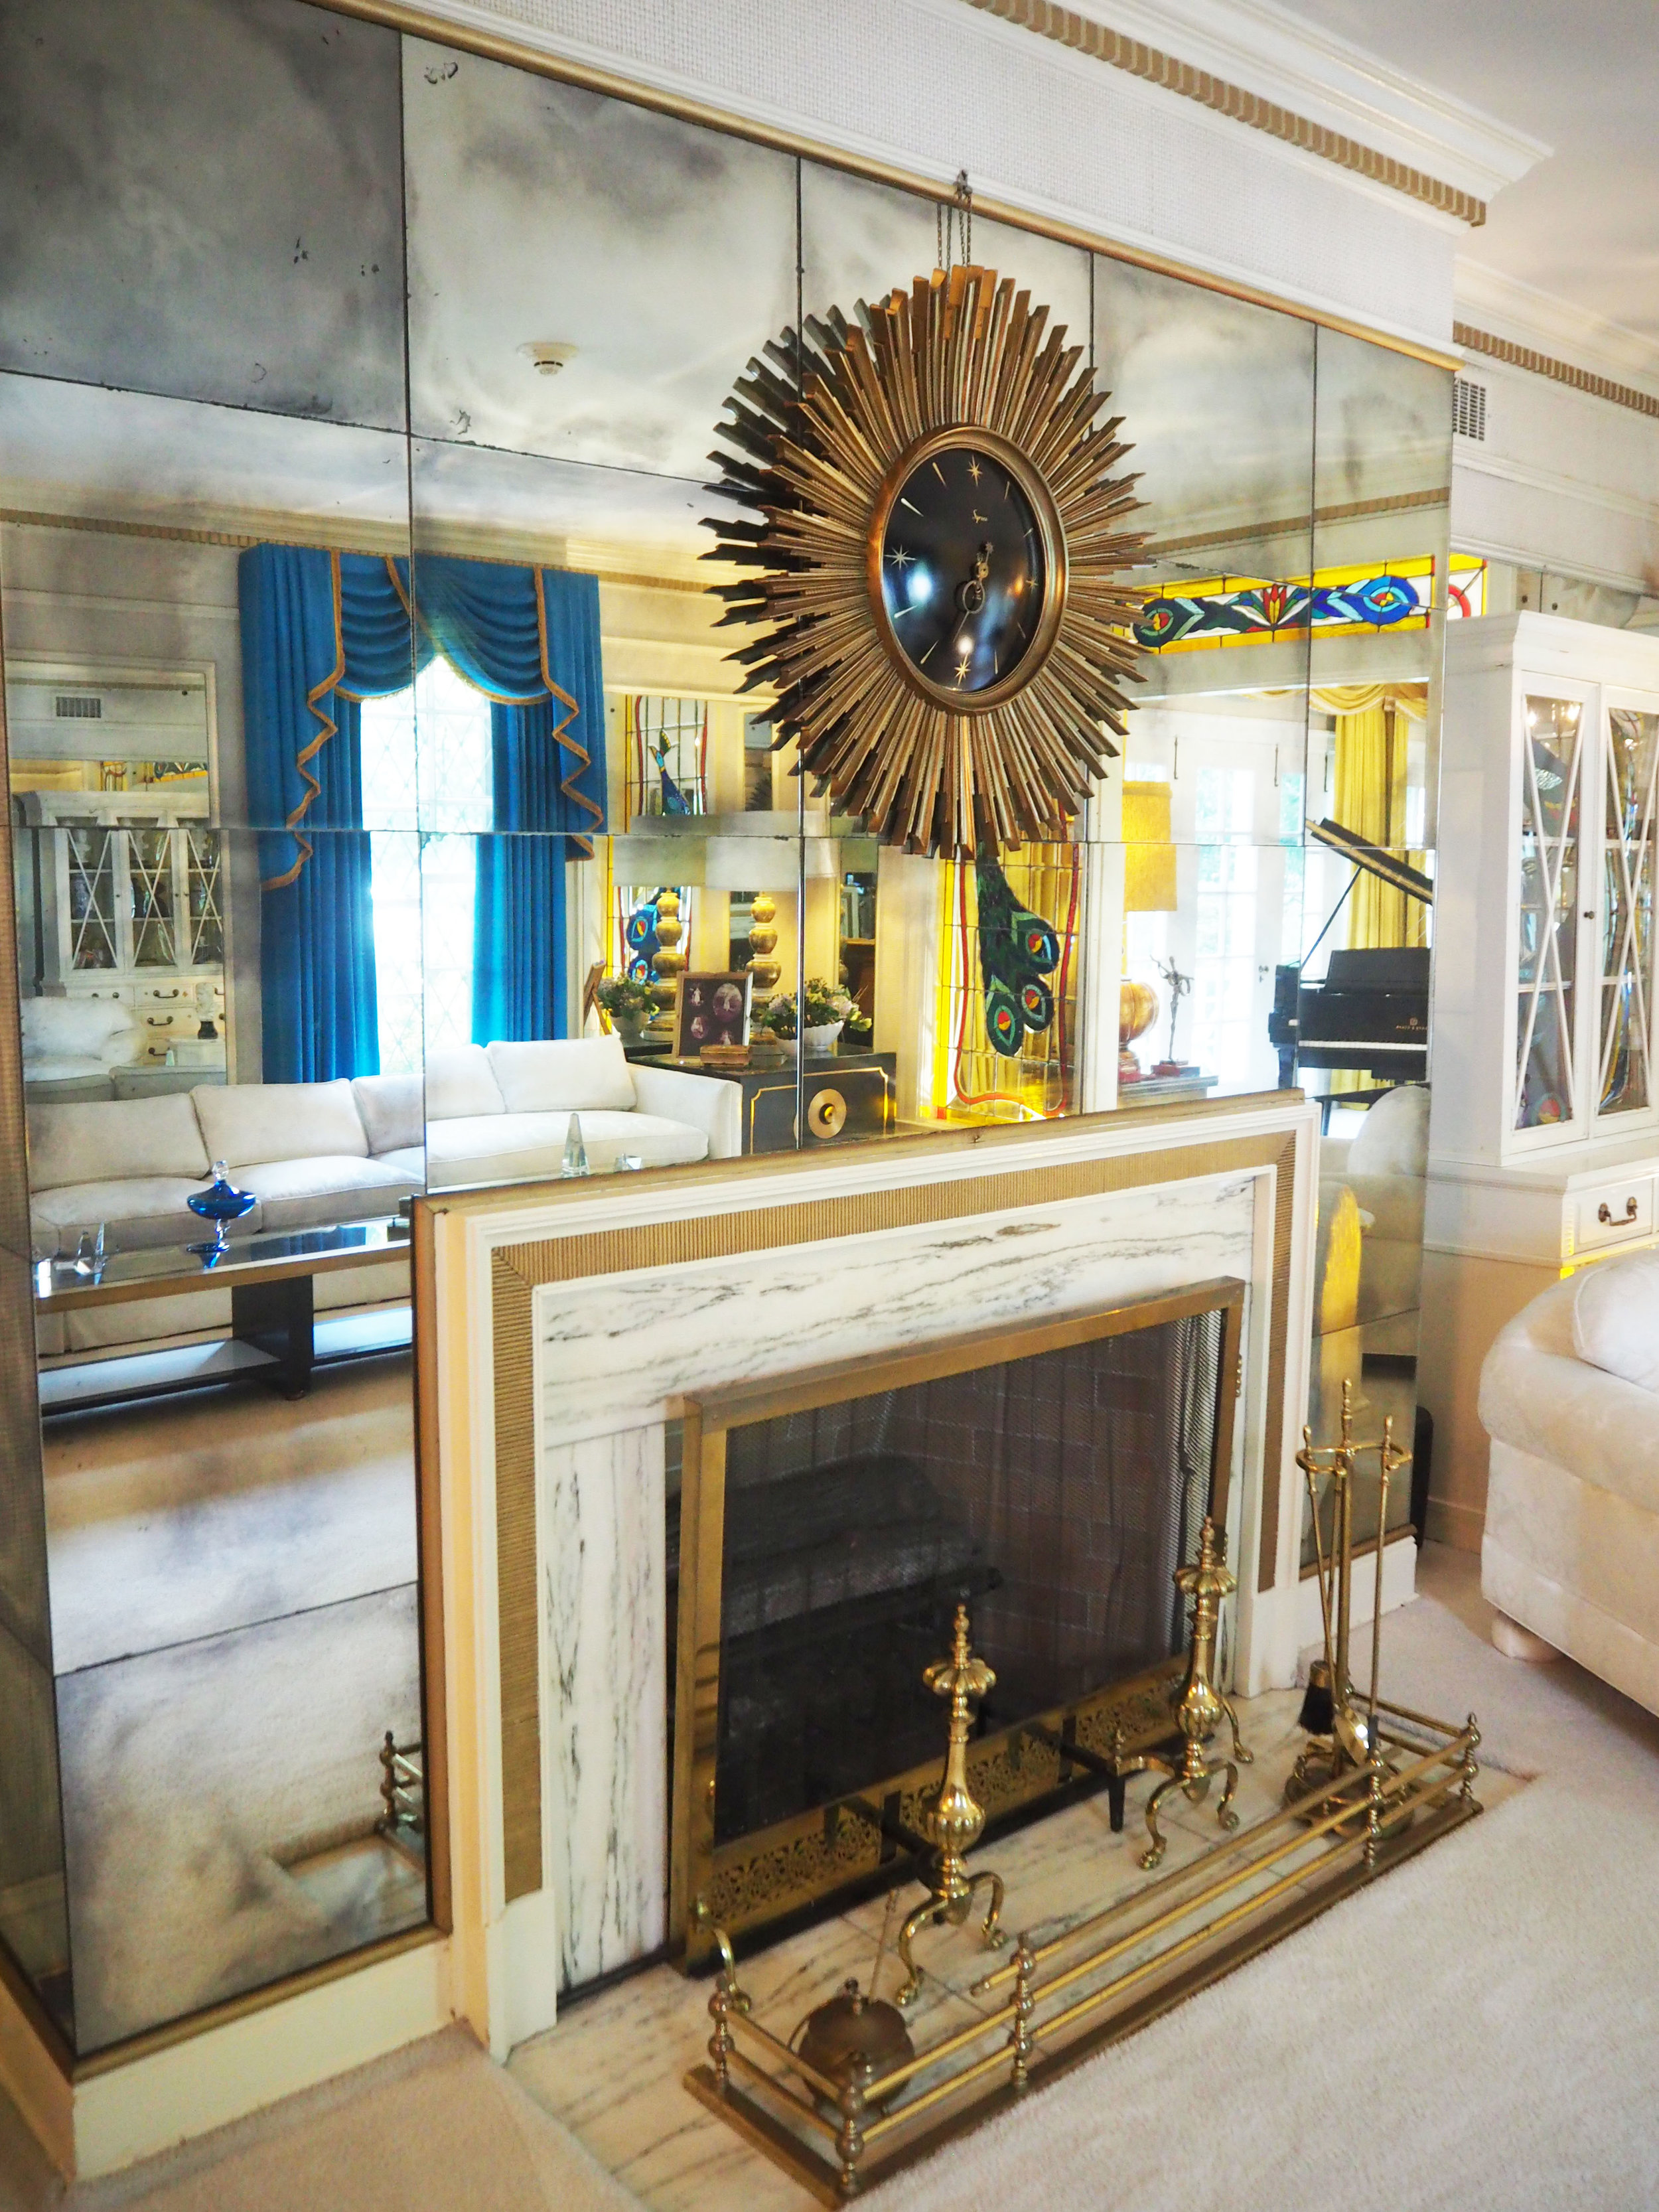 Inside Graceland {Elvis Presley's home, in Memphis Tennessee}. To read more and see more pics, click here.